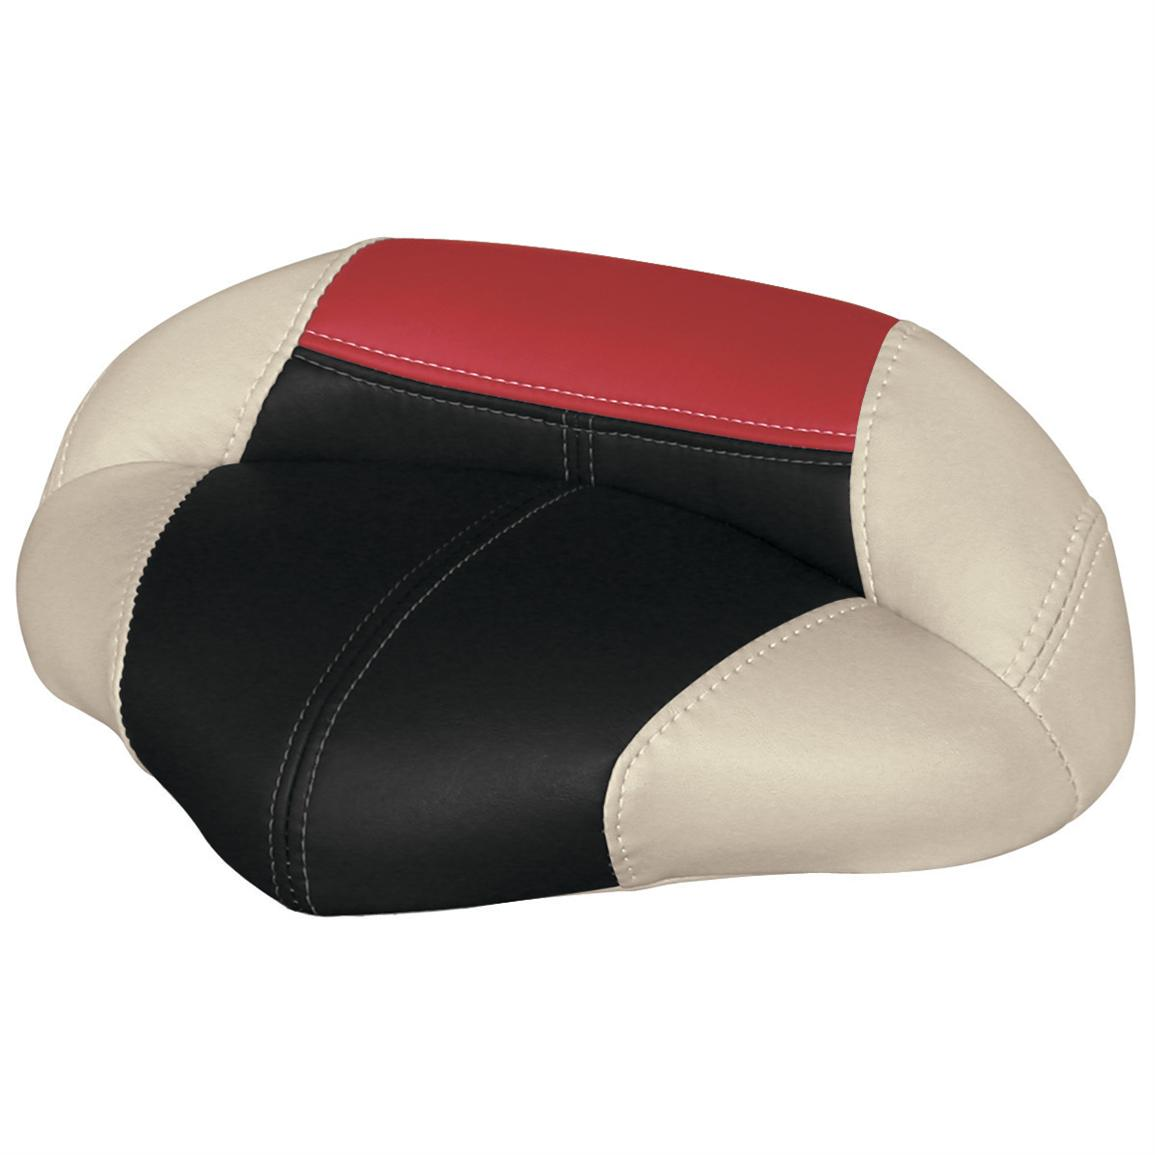 Wise® Blast-Off™ Series Pro Seat, Mushroom / Black / Red